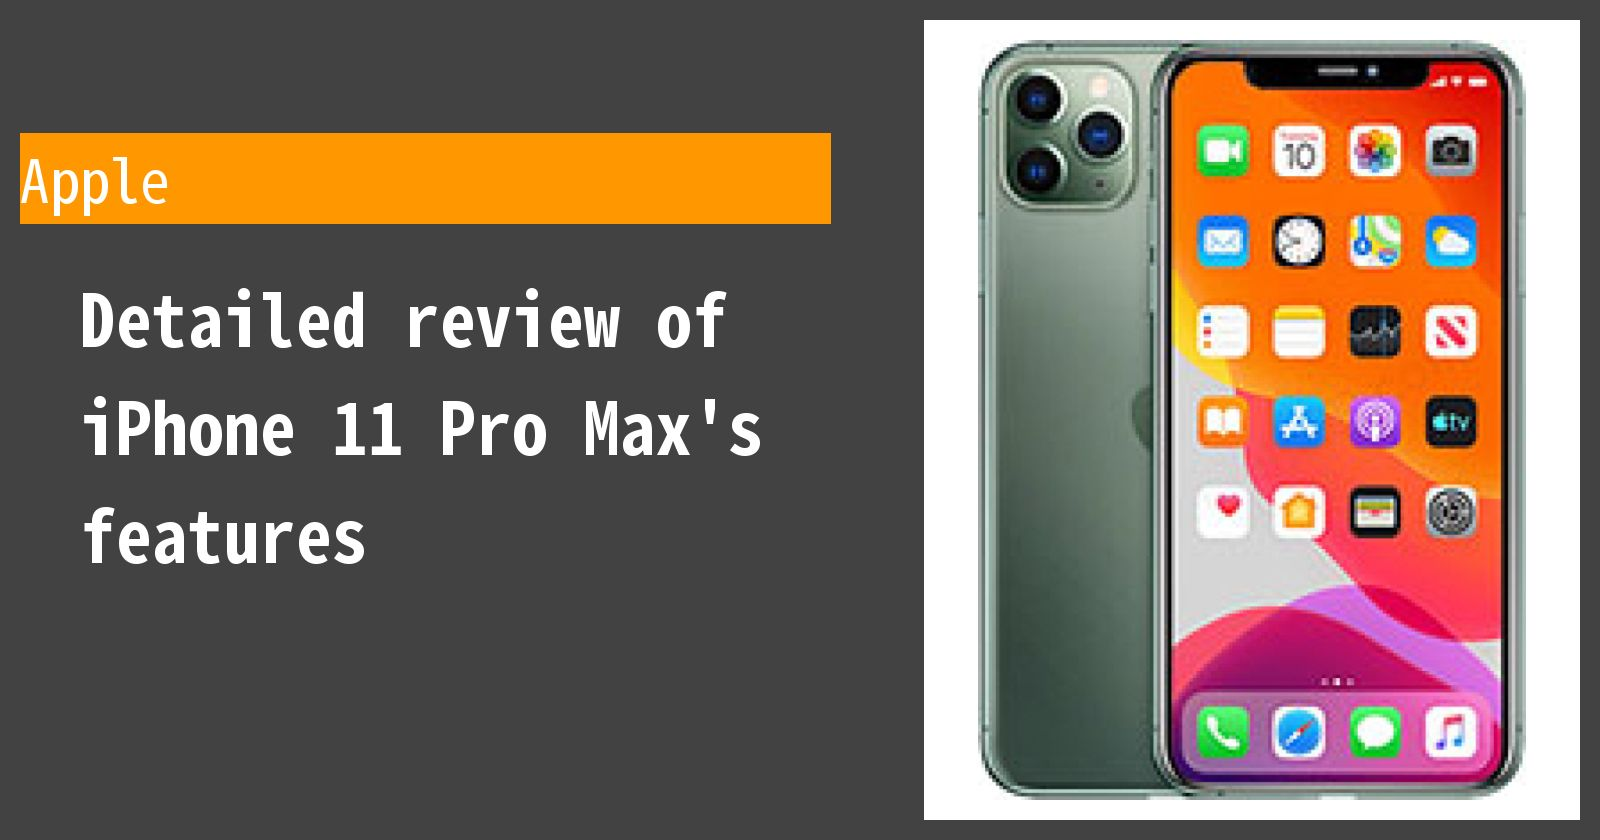 Detailed review of iPhone 11 Pro Max's features